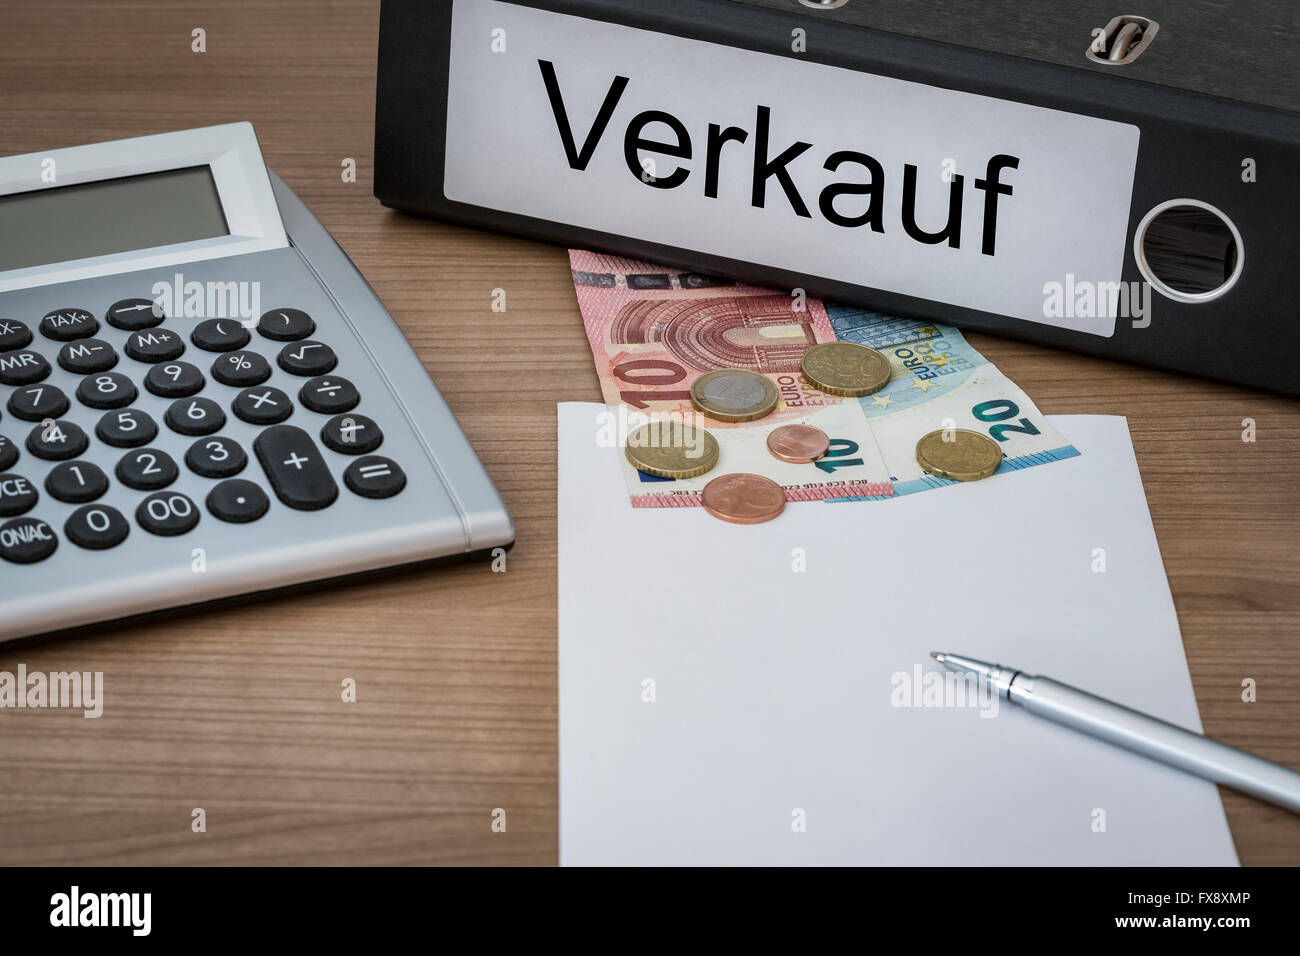 Verkauf (German Sales) written on a binder on a desk with euro money calculator blank sheet and pen - Stock Image